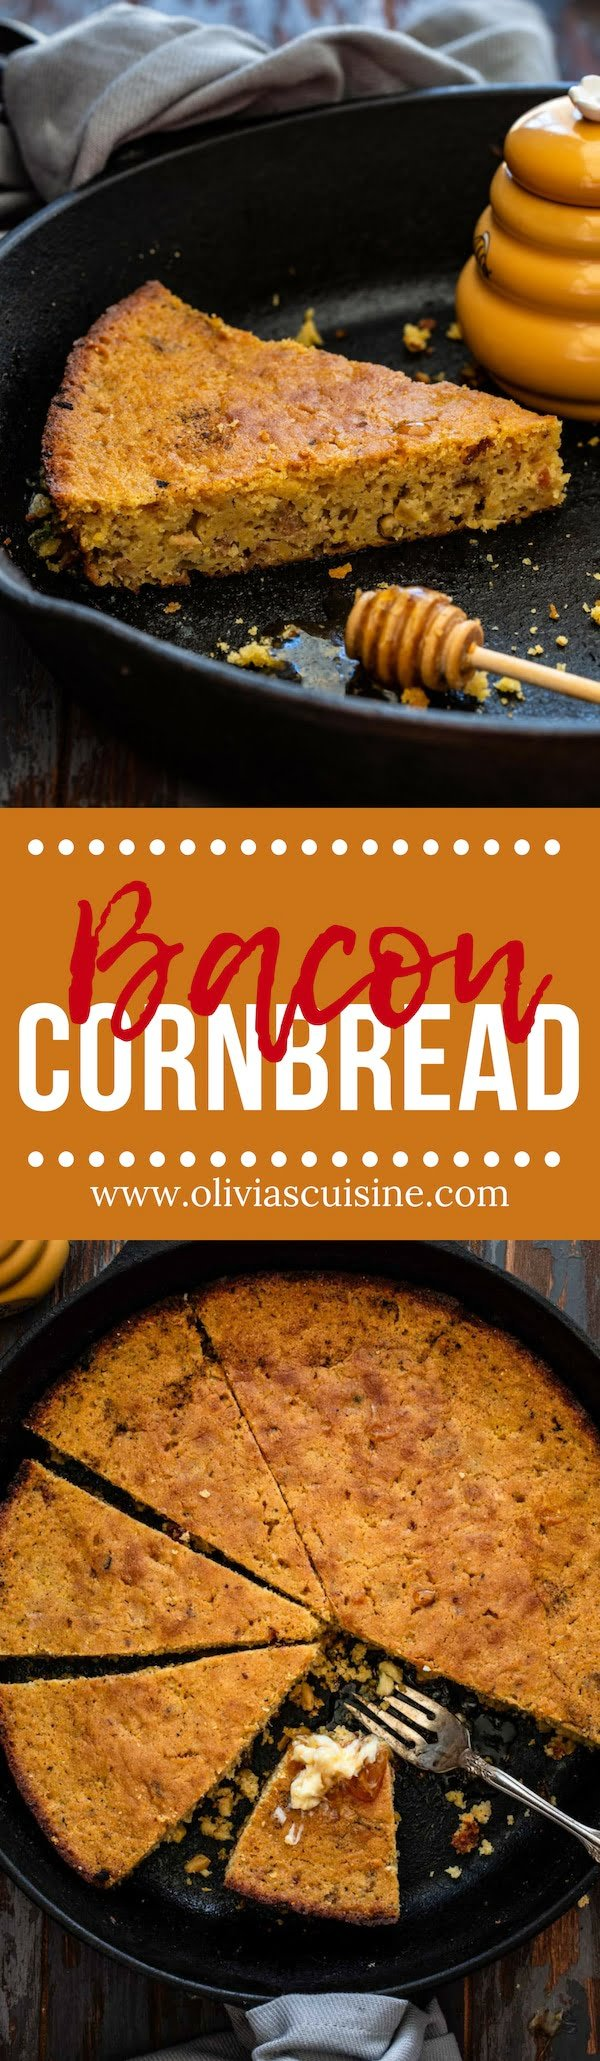 Brown Butter Bacon Cornbread | www.oliviascuisine.com | Easy and delicious, this Brown Butter Bacon Cornbread takes your cornbread game to a whole new level! Great as a side dish or by itself as a snack, topped with butter and drizzled with honey. (Recipe and food photography by @oliviascuisine). #cornbread #brownbutter #bacon